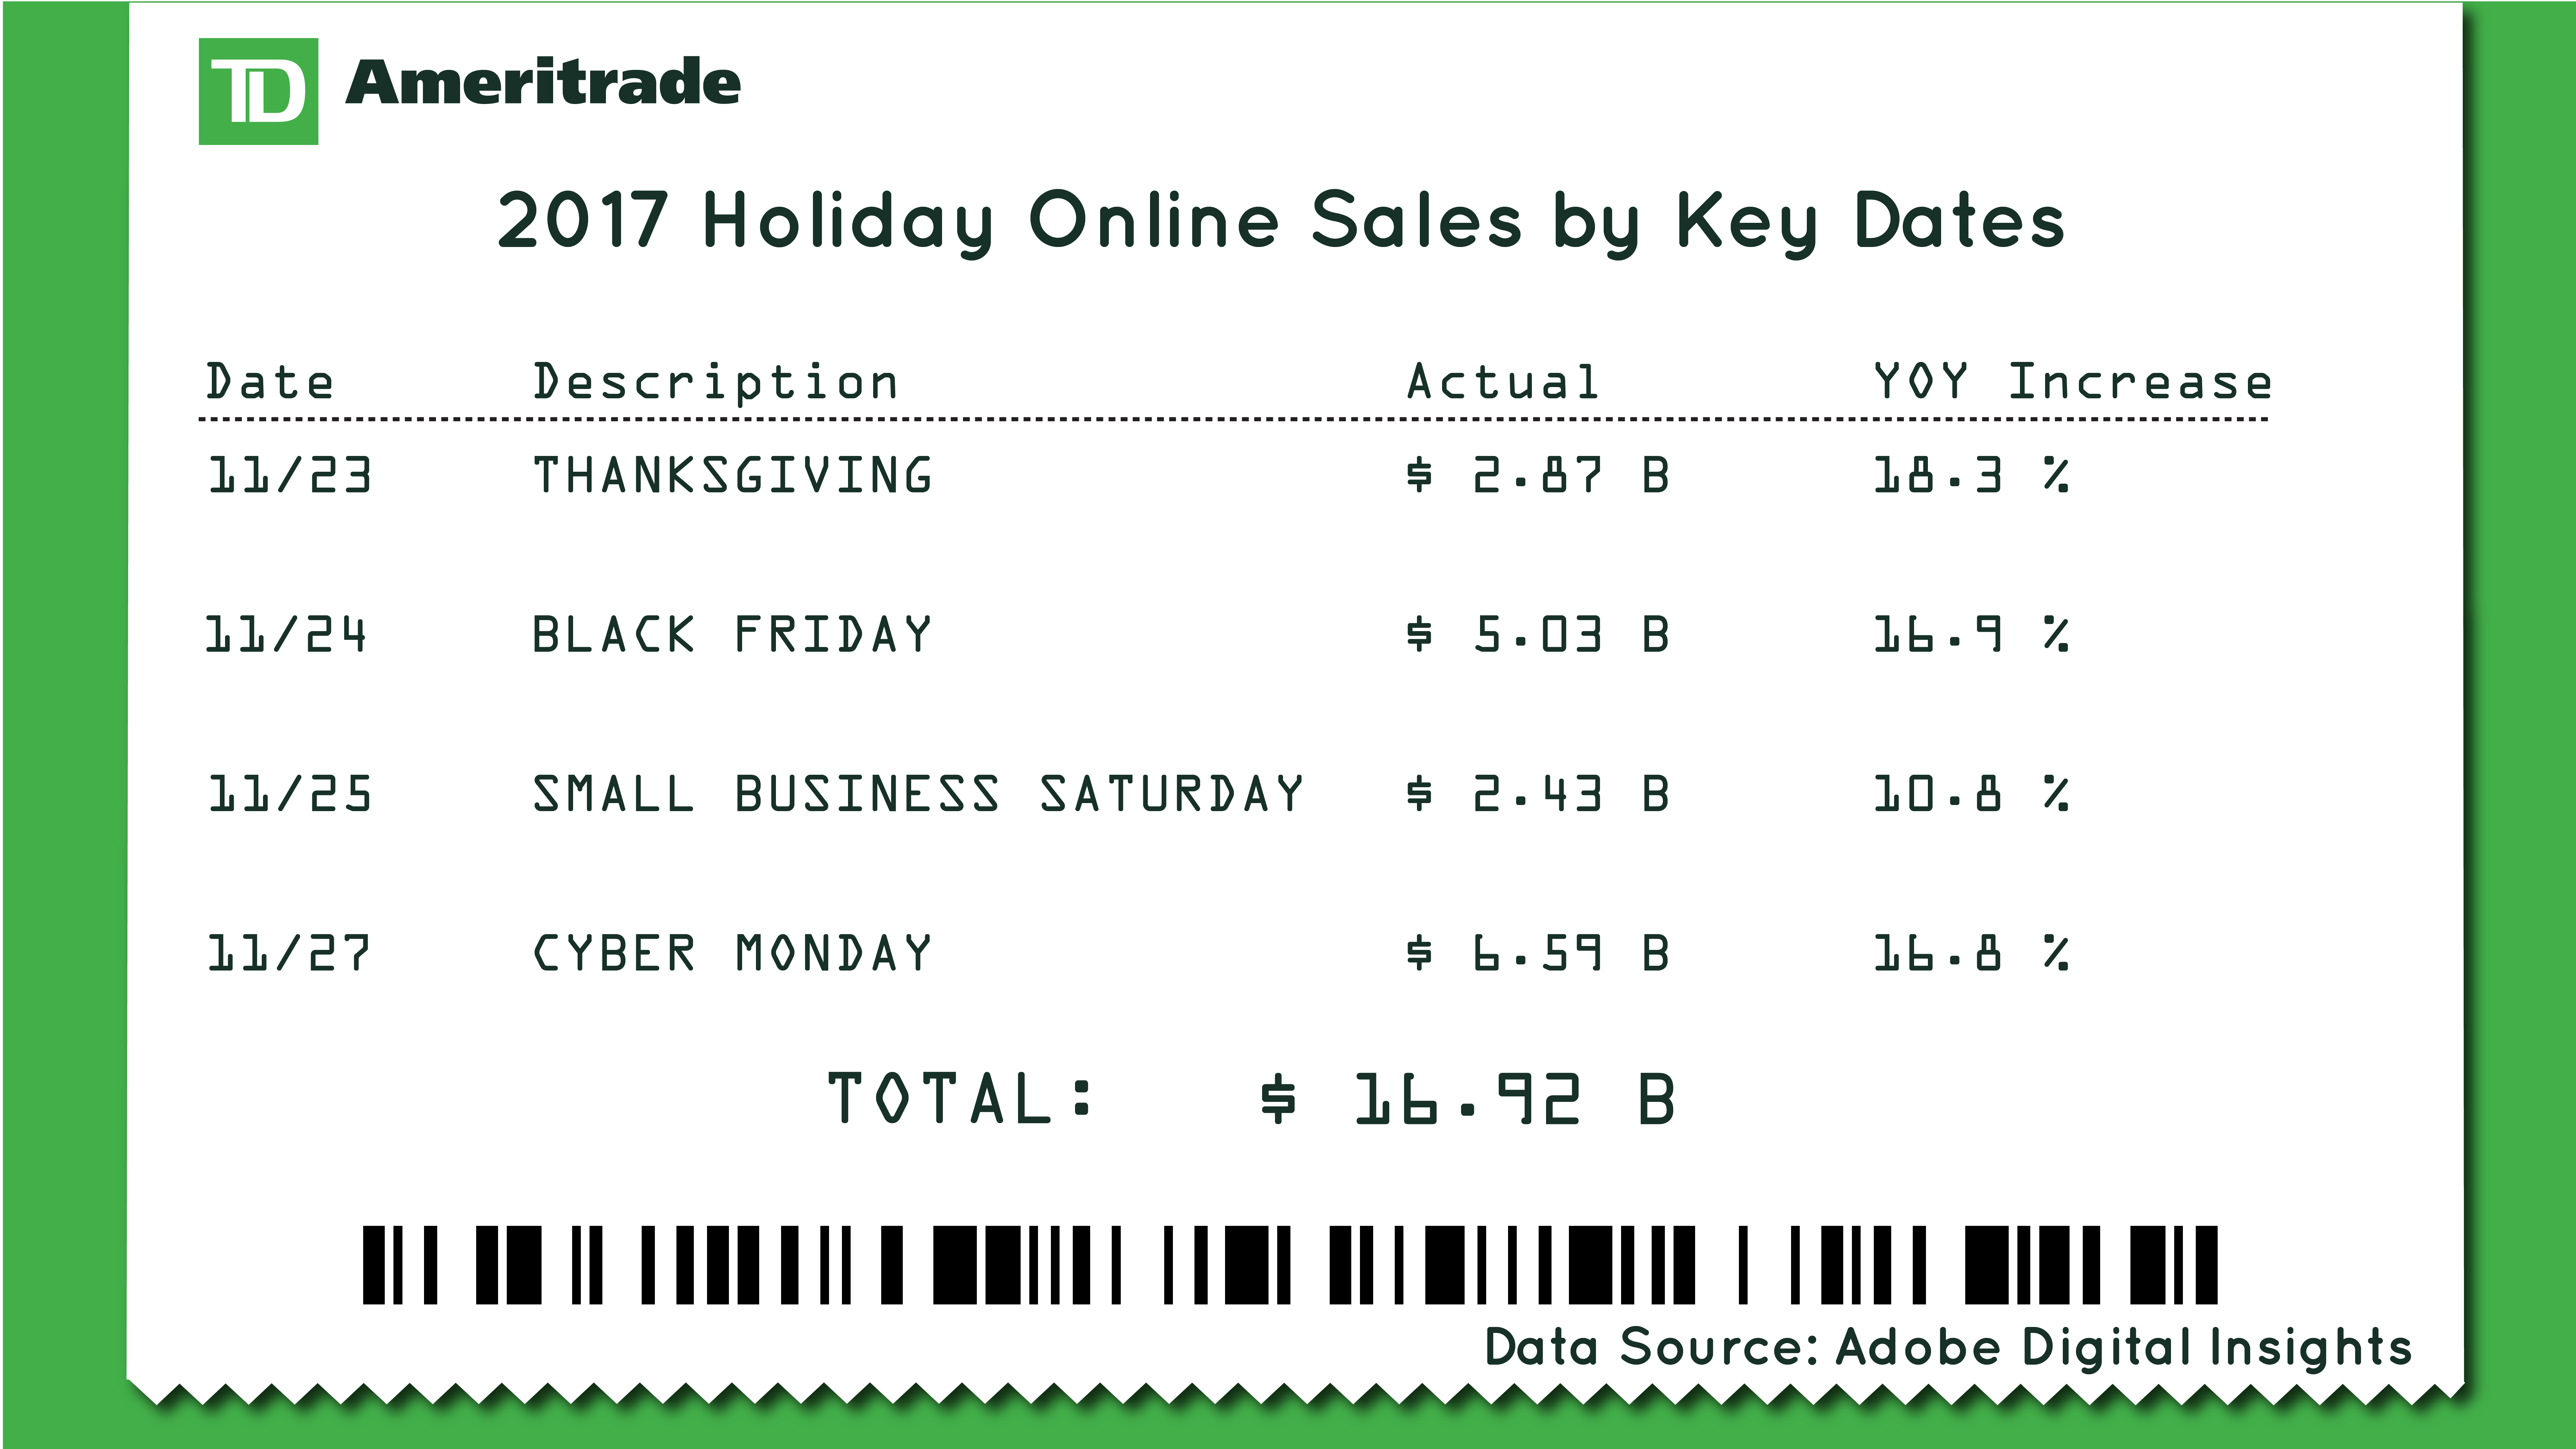 Table showing key online sales for total shopping dates